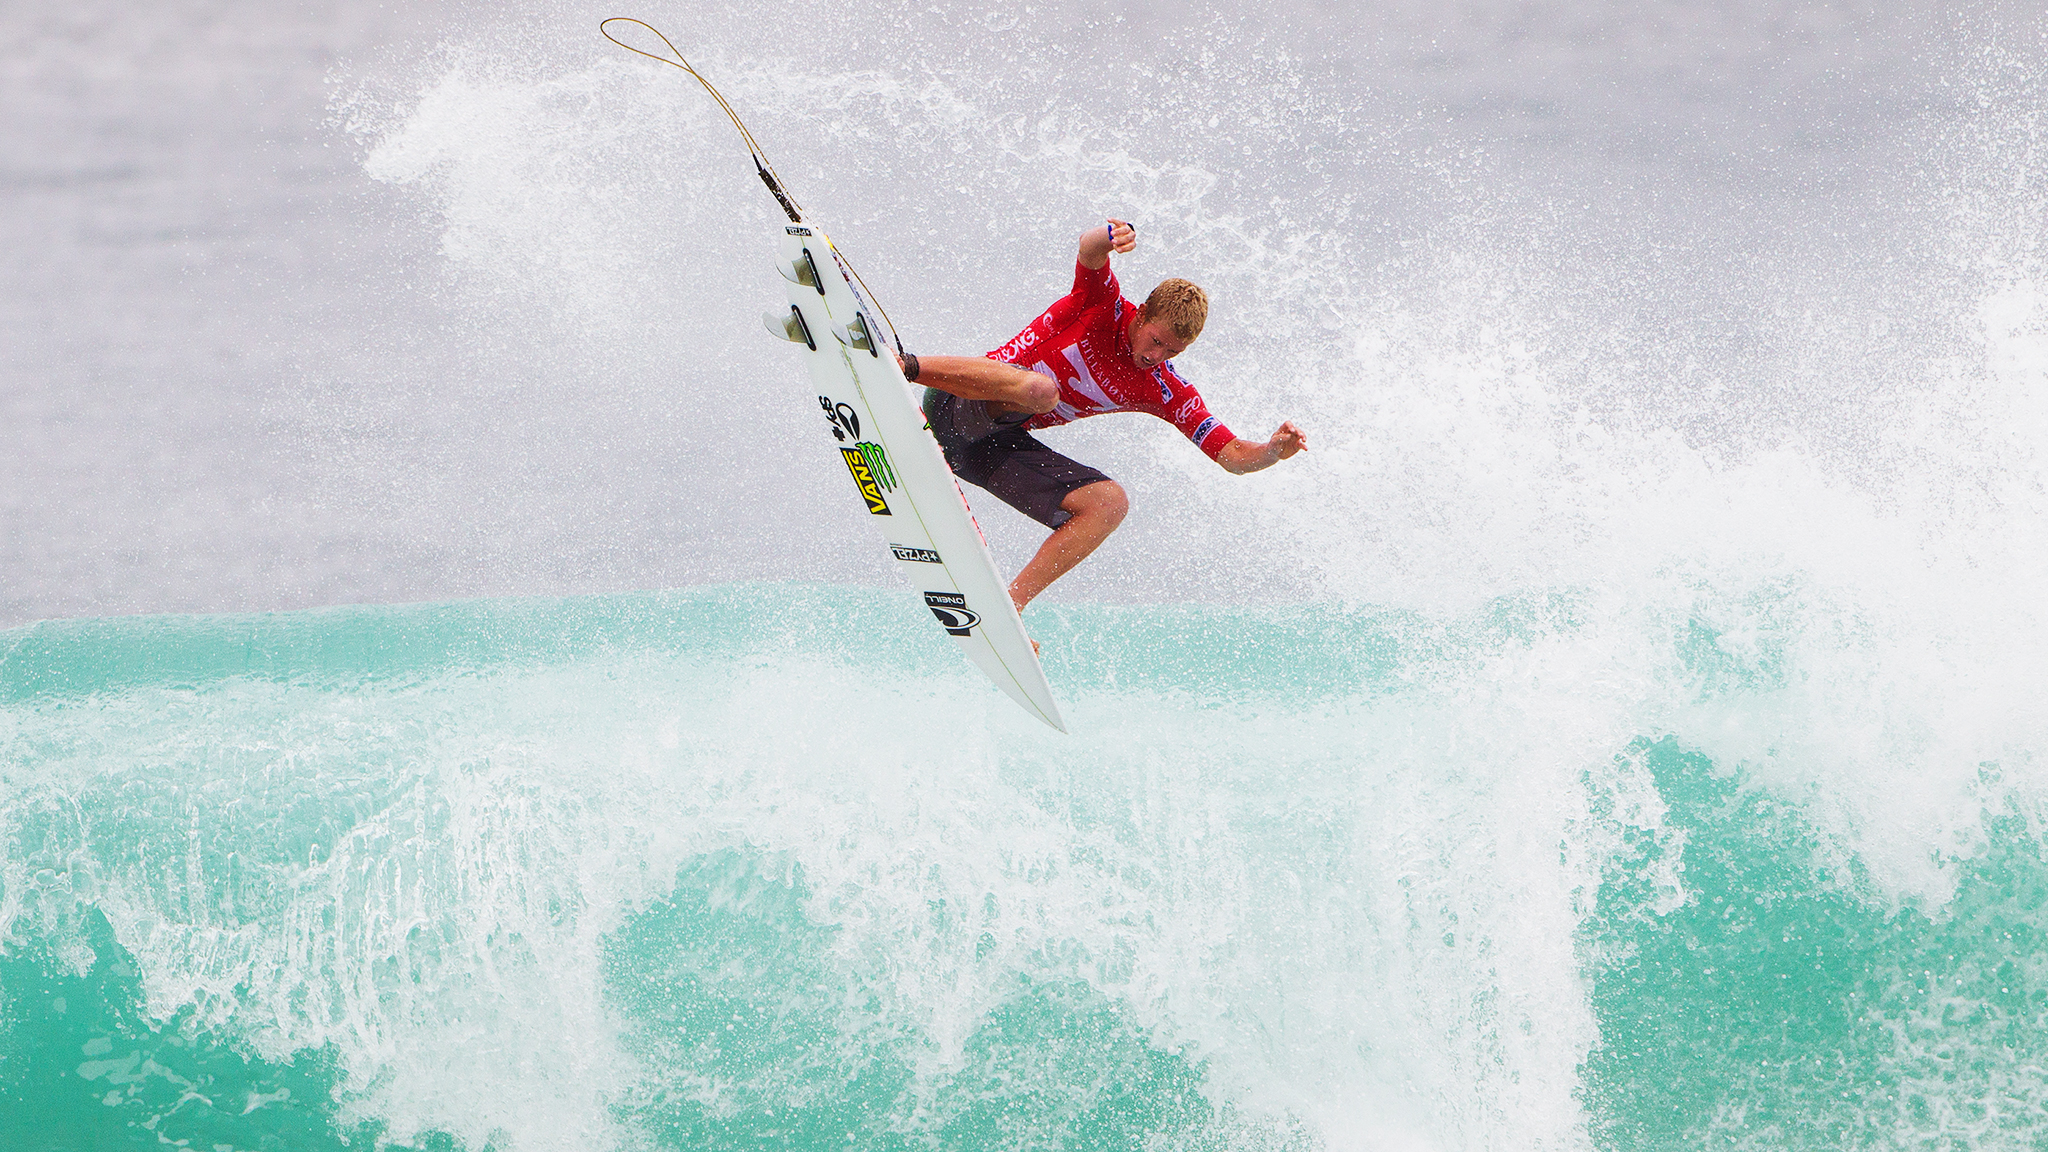 The Rise of John Florence